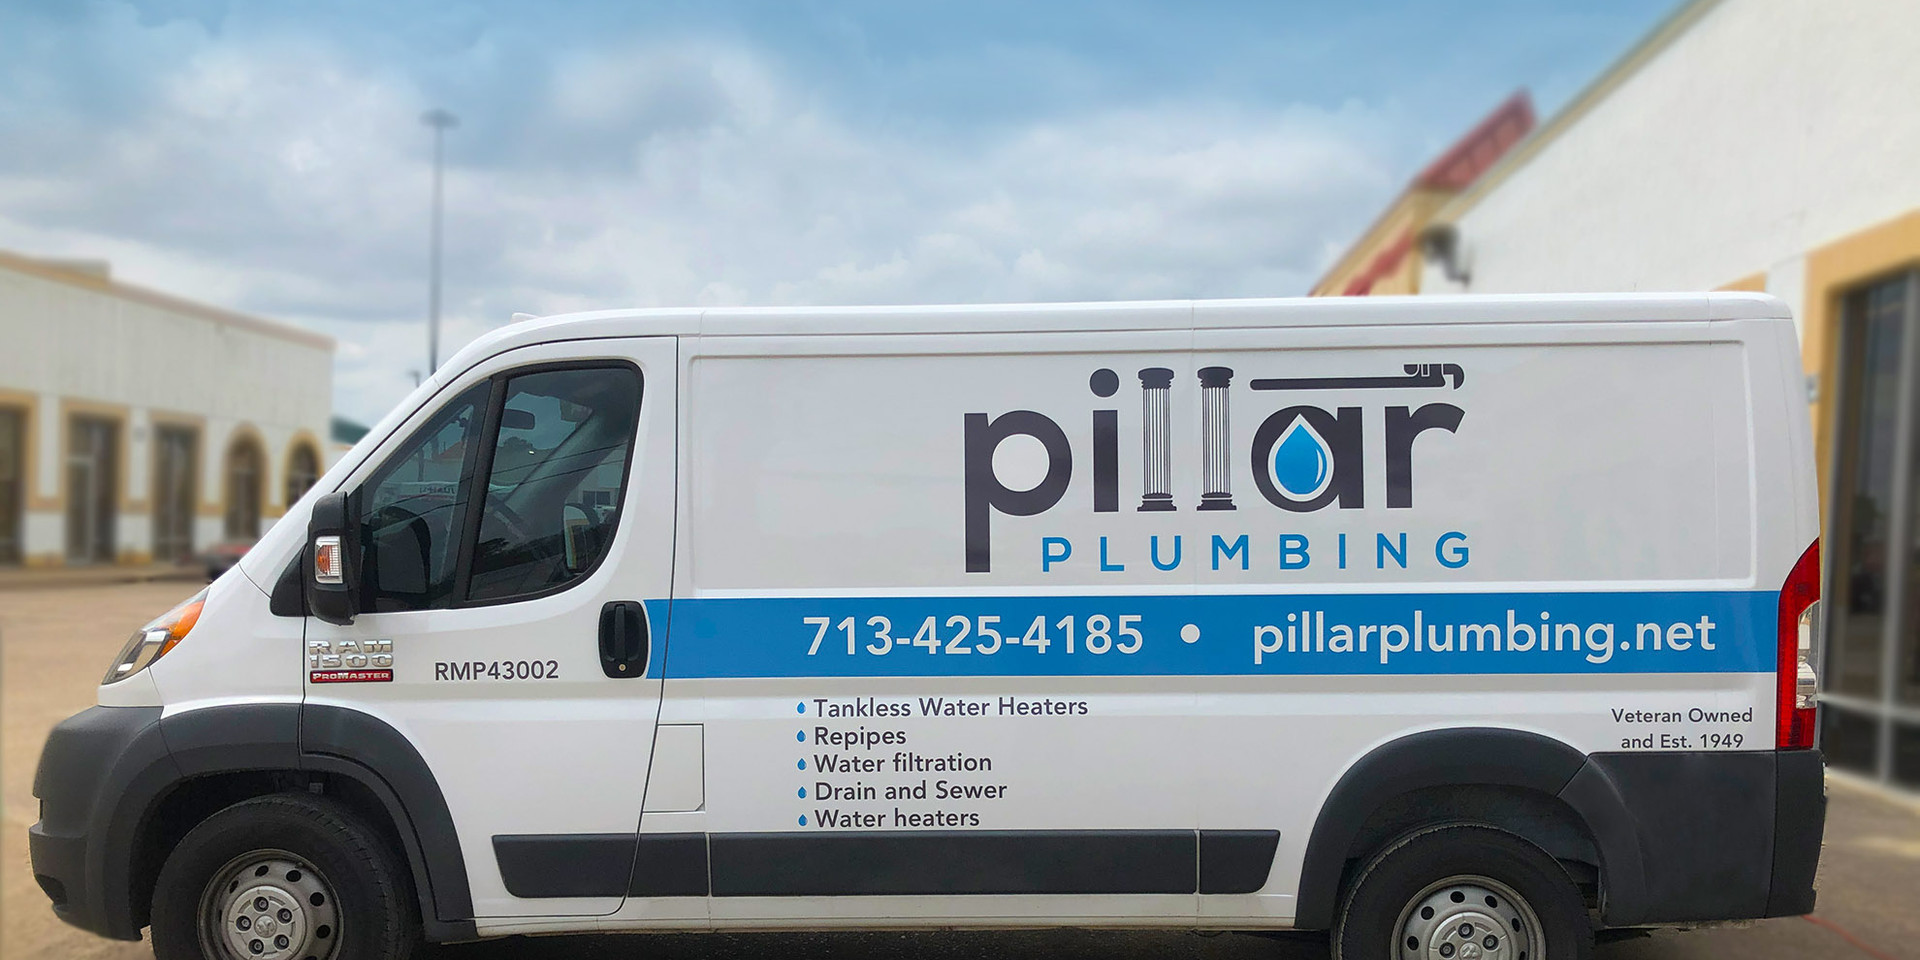 Pillar Plumbing Van Graphics